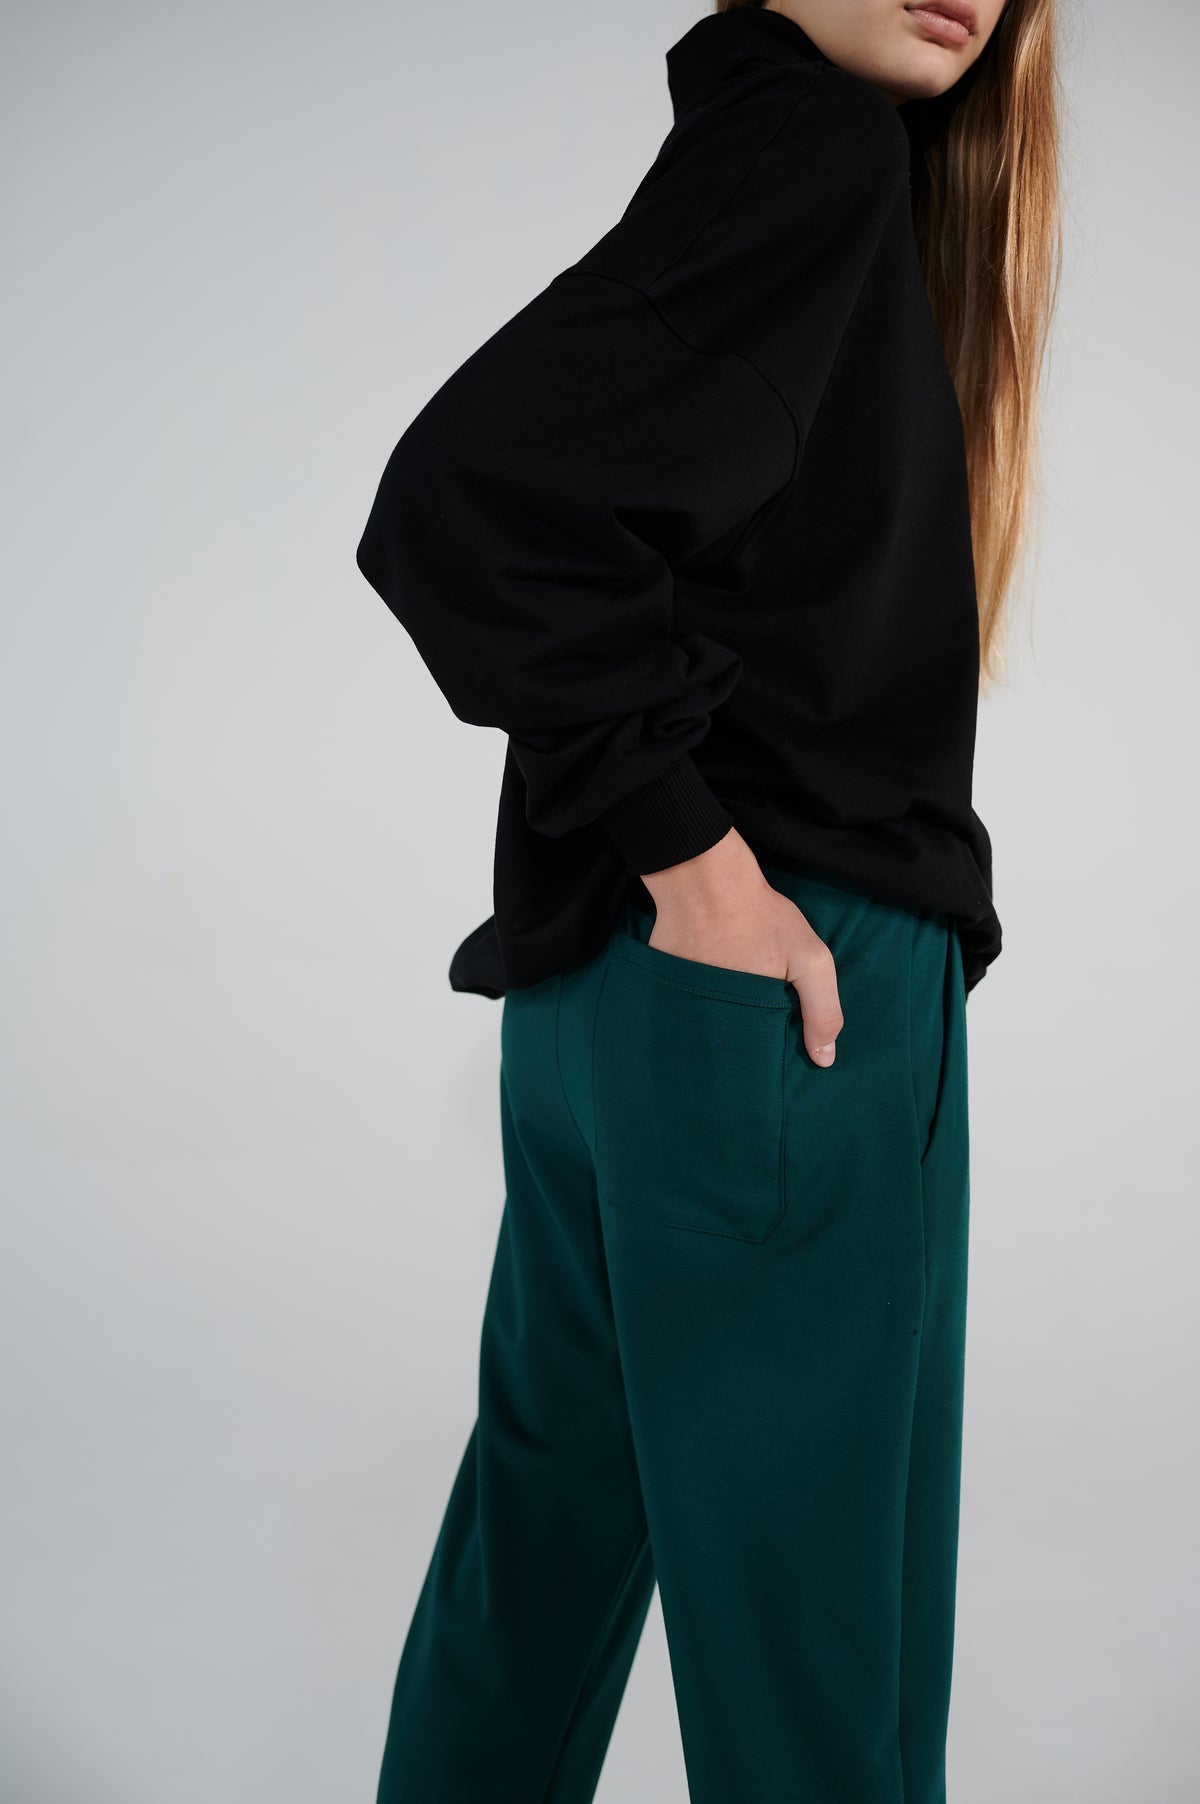 le-slap-details-lookbook-green-lounge-pants-relaxed-fit.jpg